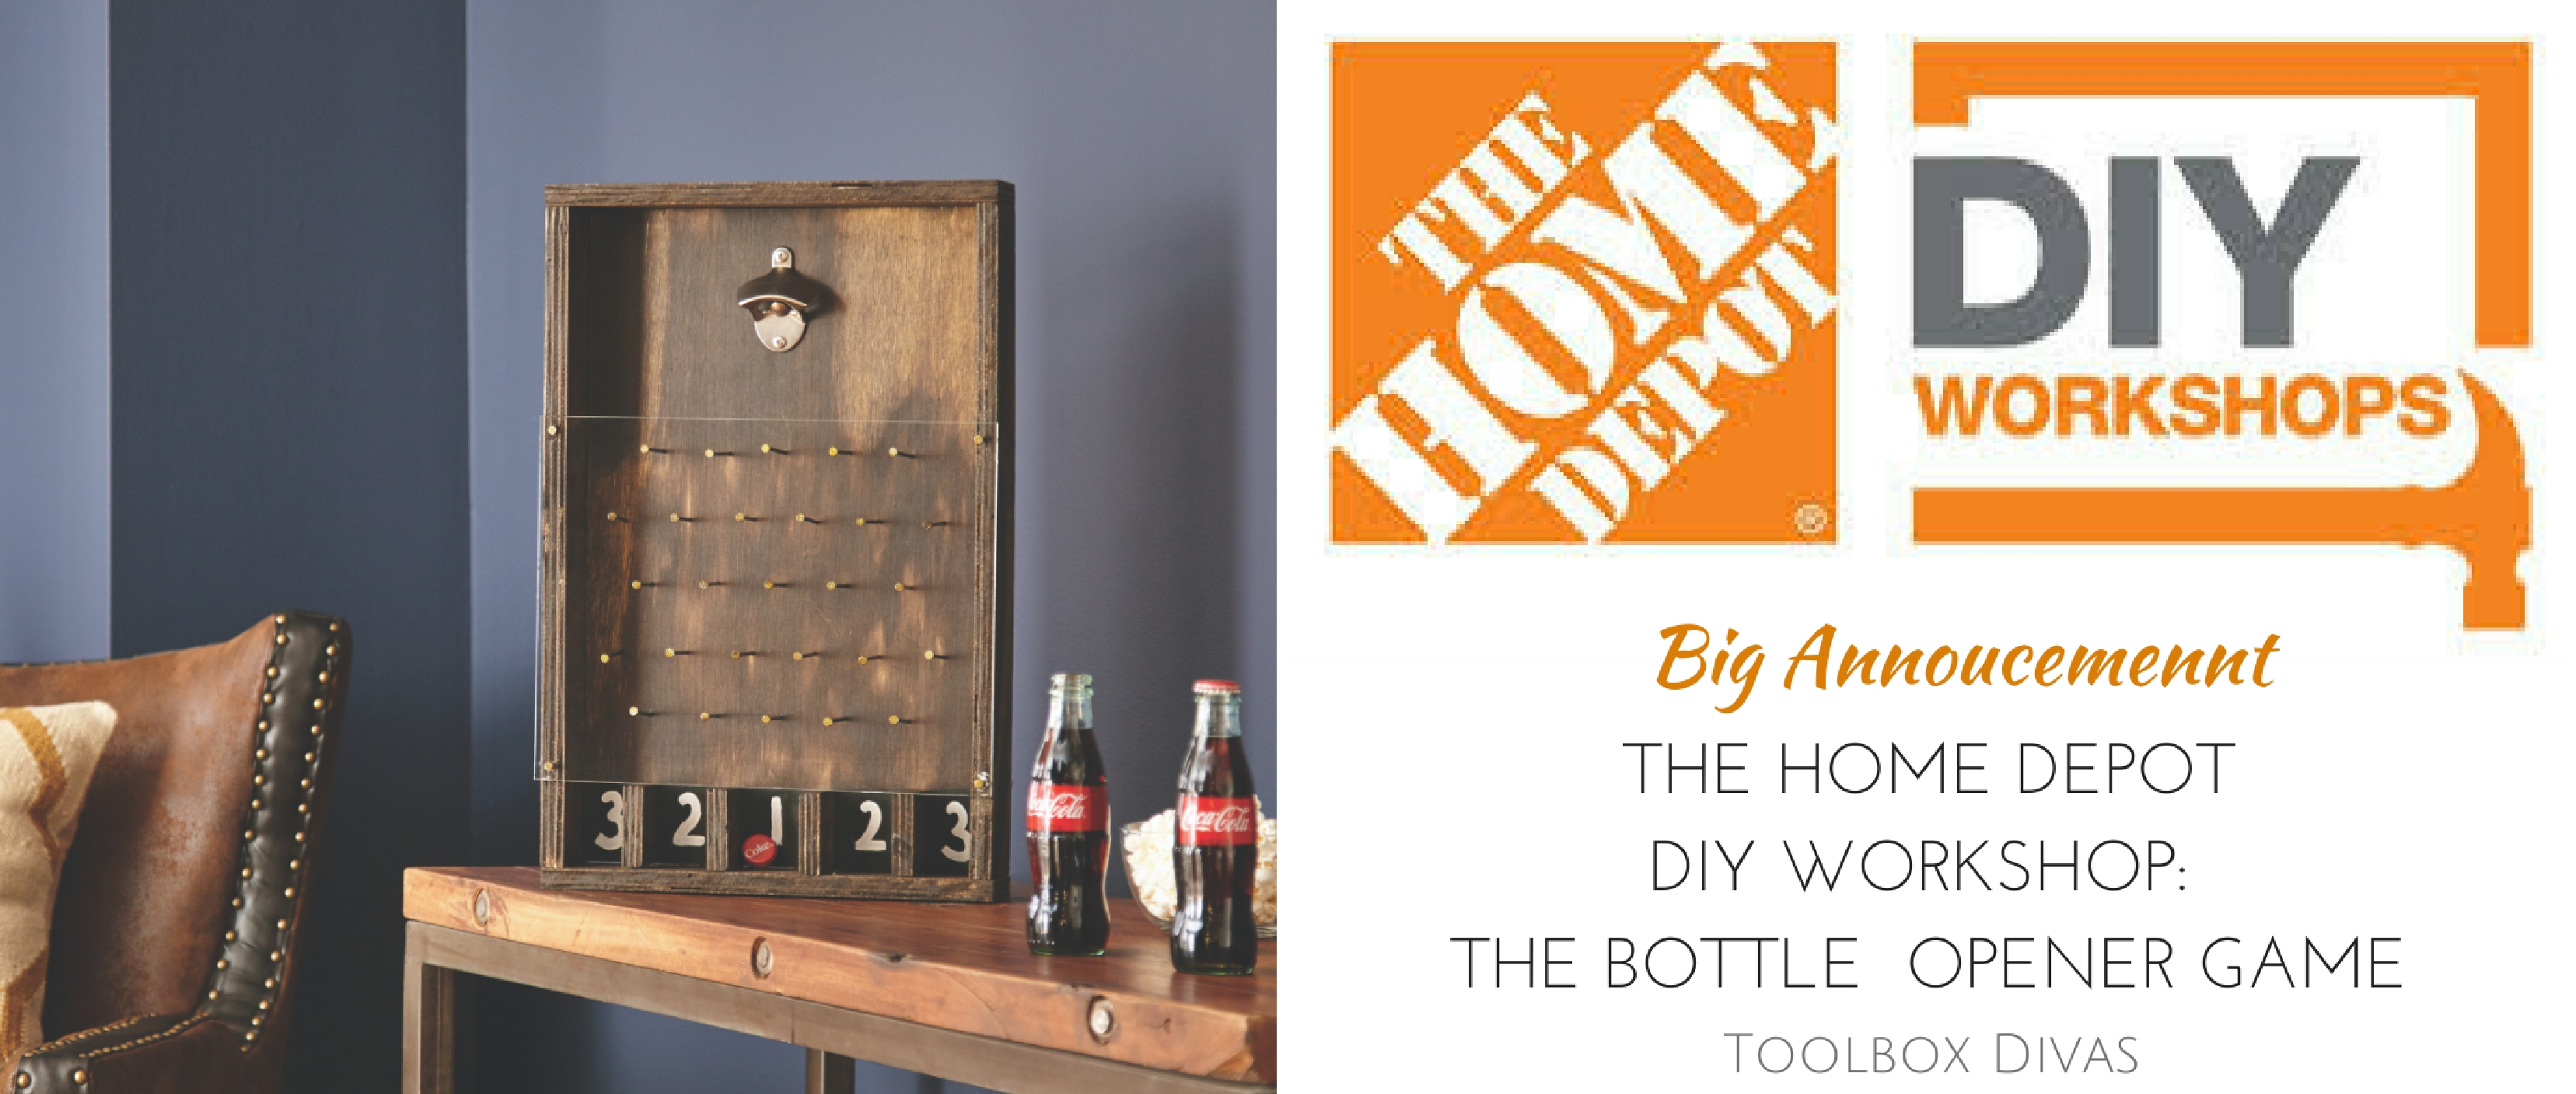 THE HOME DEPOT DIY WORKSHOP FATHER S DAY BOTTLE OPENER GAME